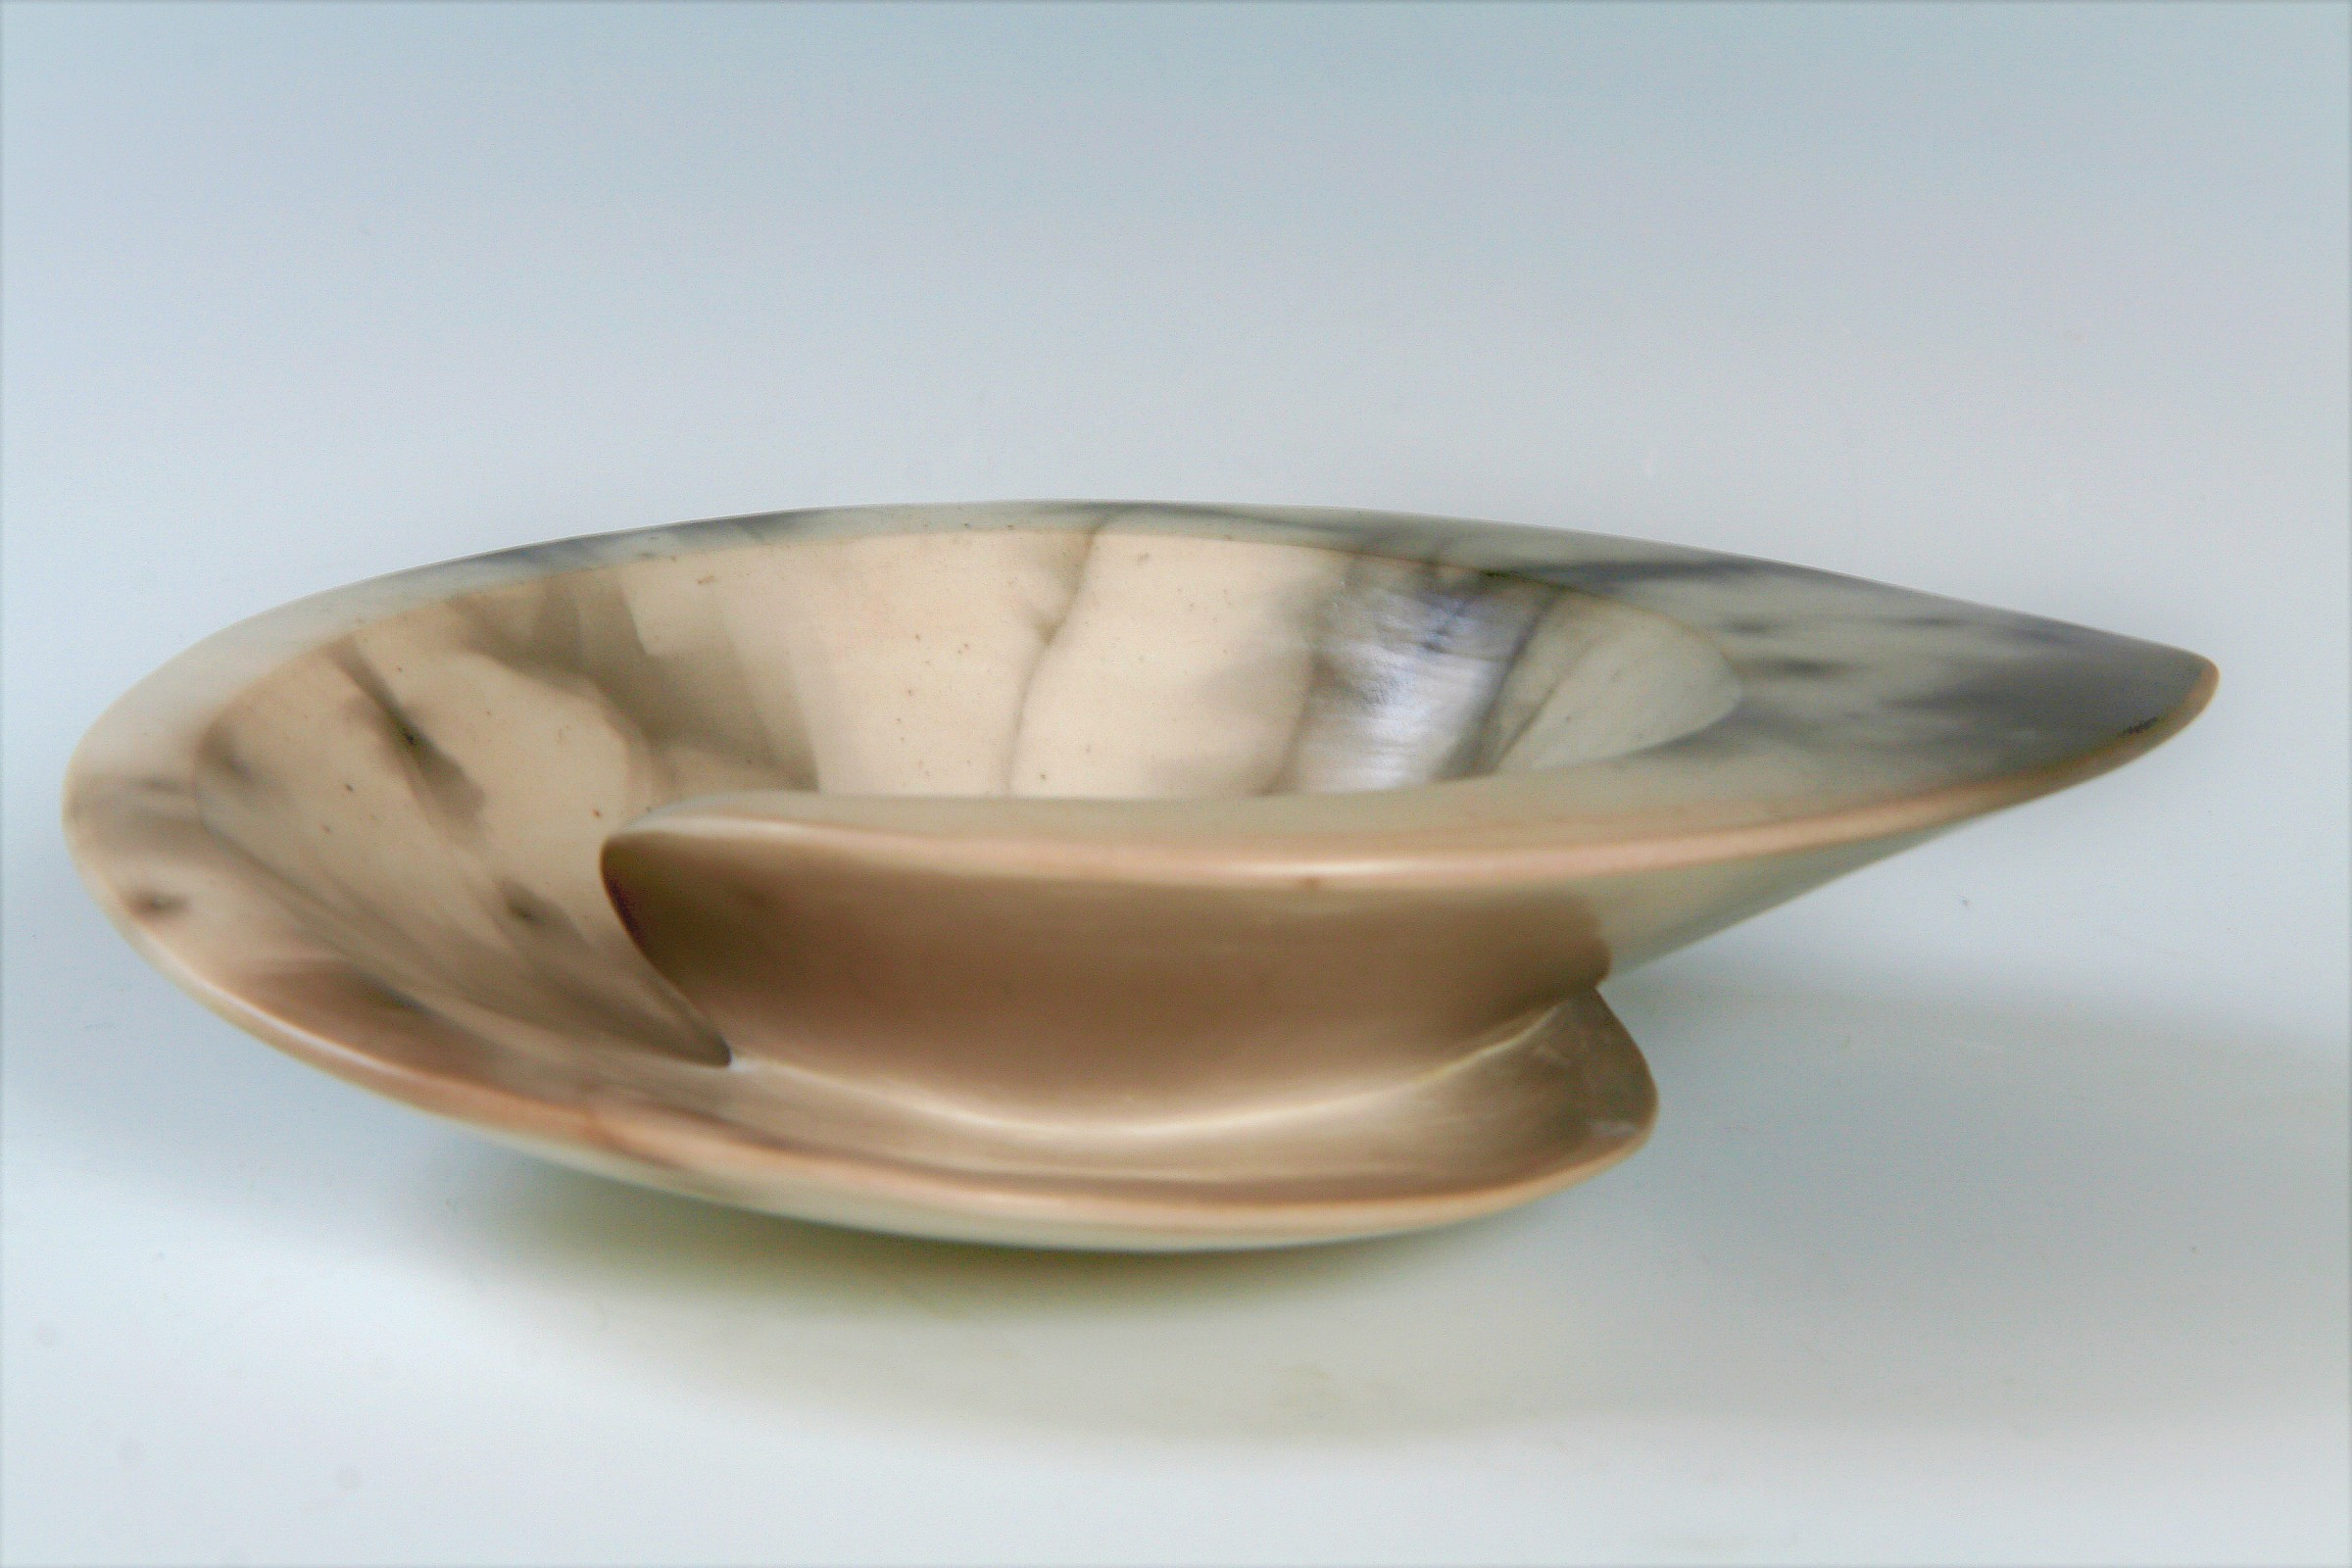 "<span class=""link fancybox-details-link""><a href=""/artists/38-antonia-salmon/works/6440-antonia-salmon-dervish-bowl-2019/"">View Detail Page</a></span><div class=""artist""><strong>Antonia Salmon</strong></div> <div class=""title""><em>Dervish Bowl</em>, 2019</div> <div class=""medium"">Stoneware</div><div class=""price"">£200.00</div><div class=""copyright_line"">Copyright The Artist</div>"